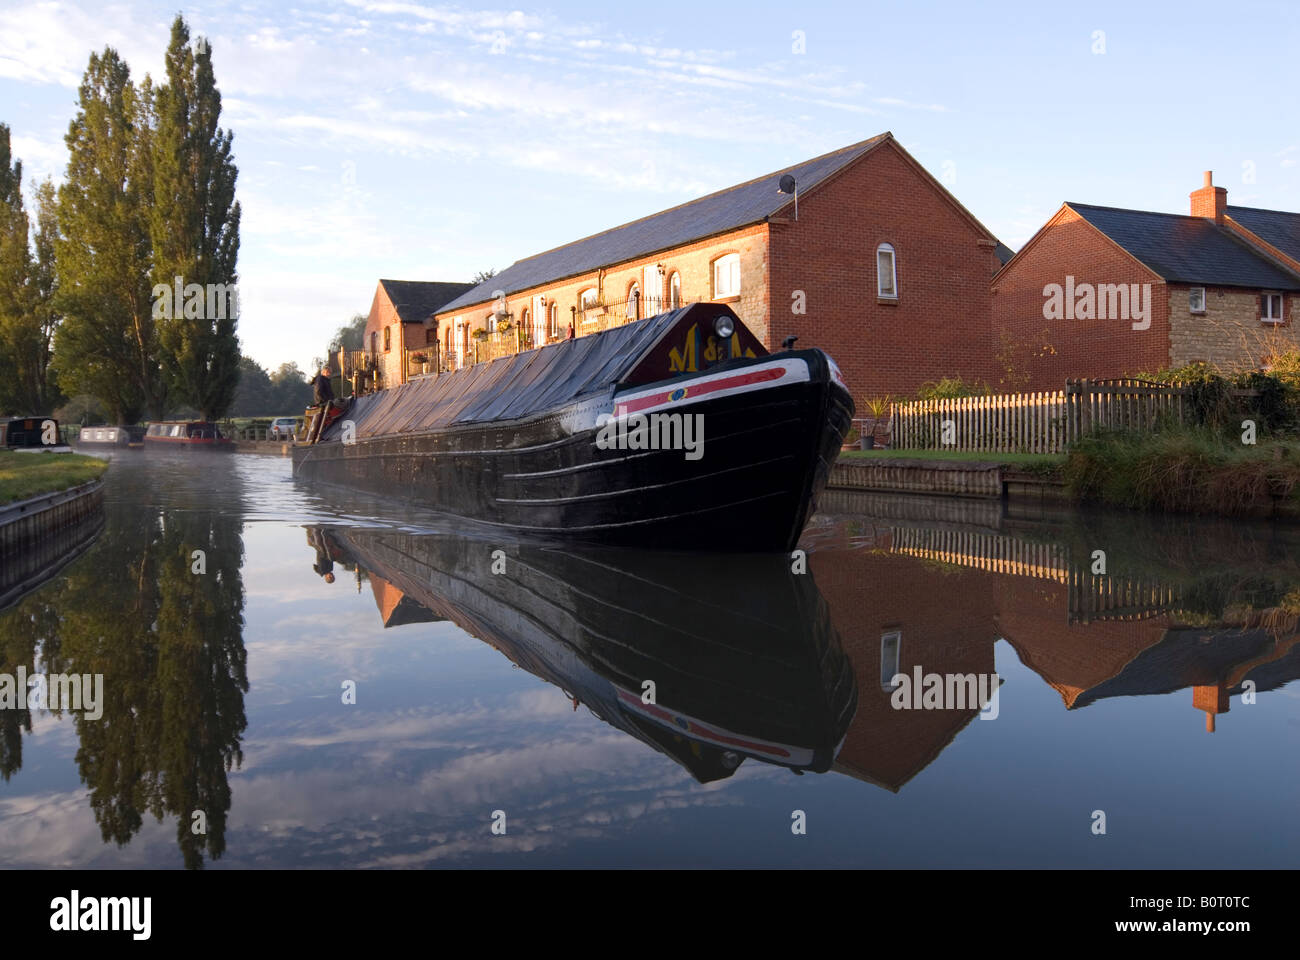 Doug Blane Traditional working narrowboat navigating at Cosgrove on the Grand Union Canal - Stock Image